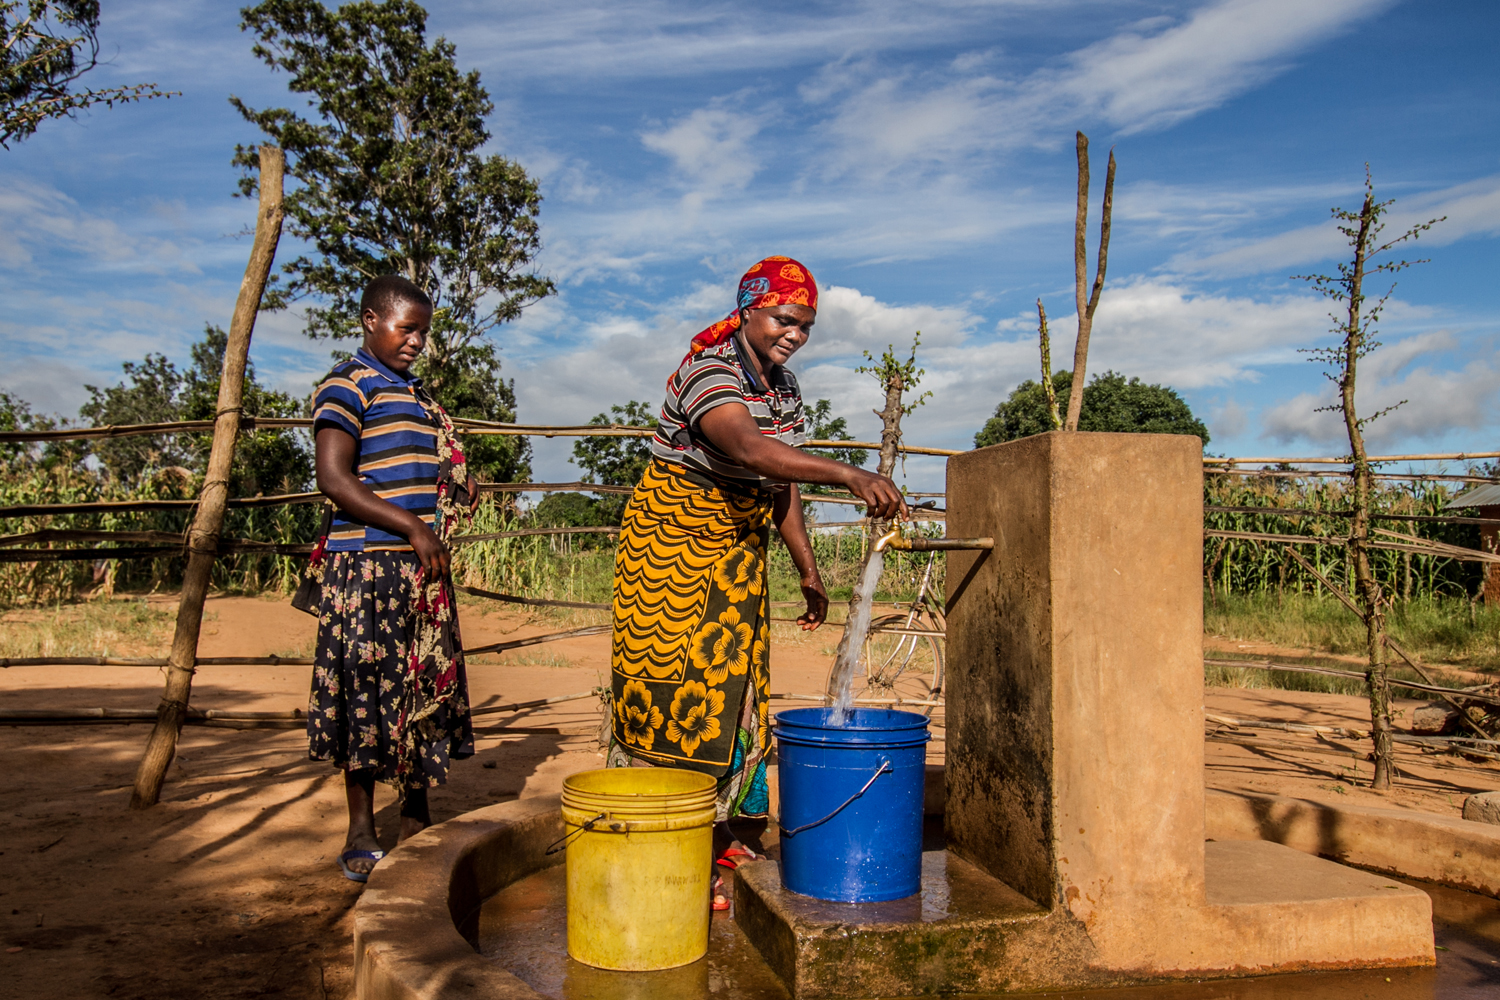 Benchmarking Rural Water Systems By A Simple Score